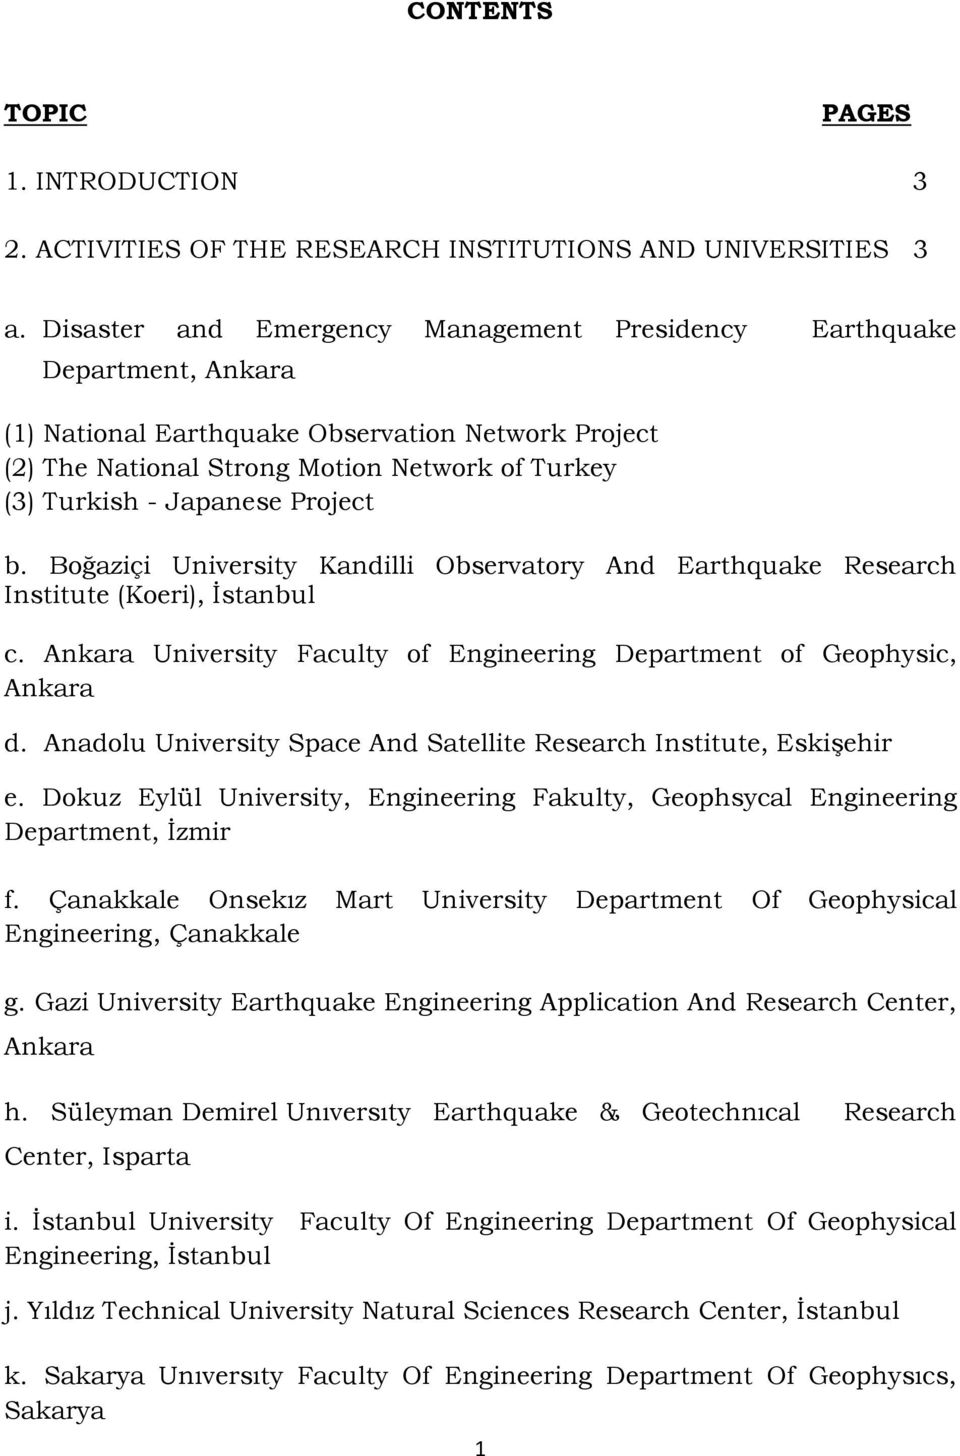 Project b. Boğaziçi University Kandilli Observatory And Earthquake Research Institute (Koeri), Ġstanbul c. Ankara University Faculty of Engineering Department of Geophysic, Ankara d.